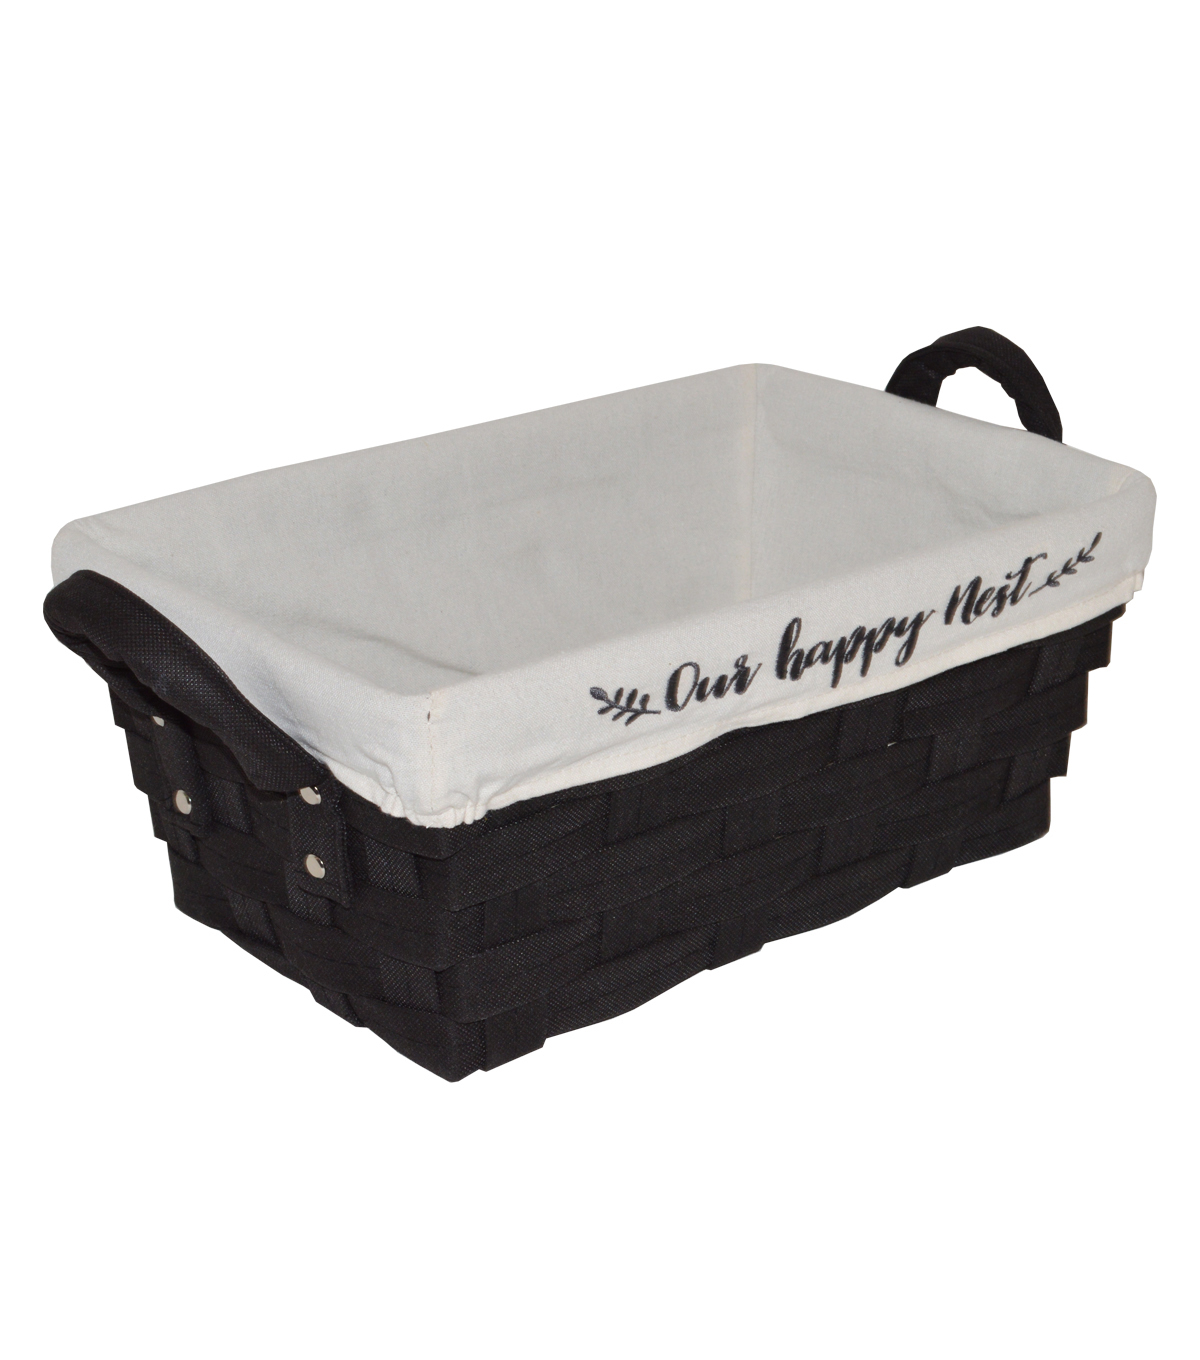 Farm Storage Non Woven Bin with Liner-Black Our Happy Nest